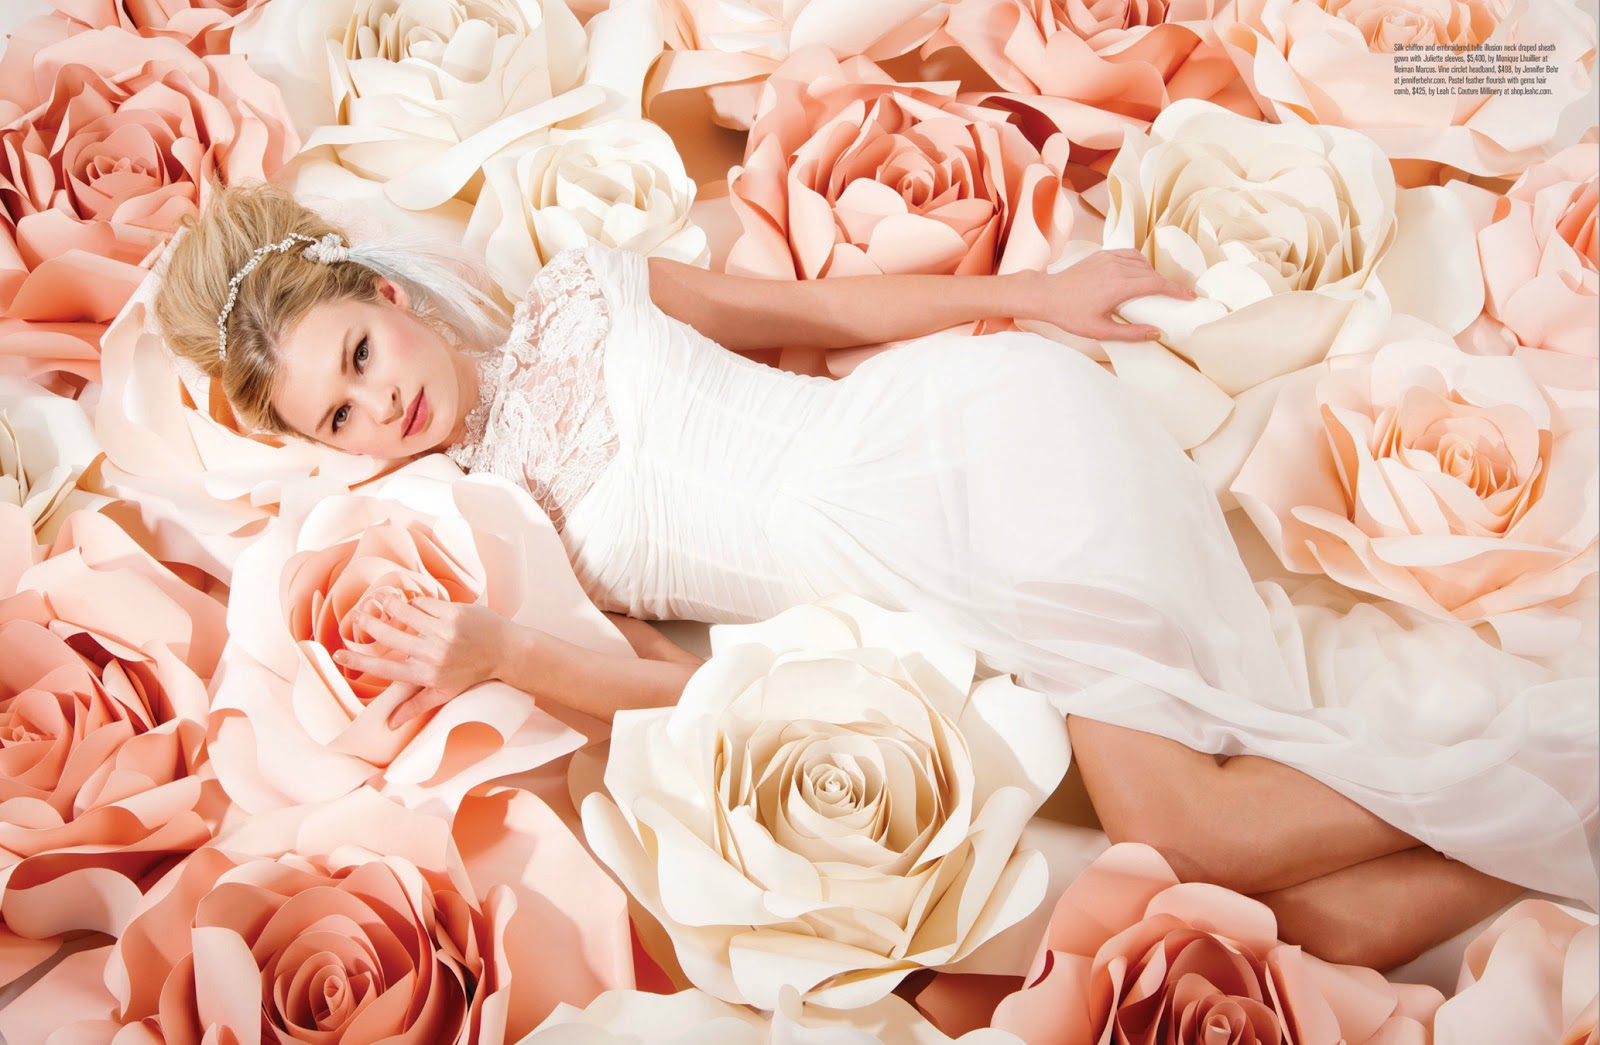 Burke pryde studio rose is a rose is a rose photography by jill watcher dhlflorist Choice Image